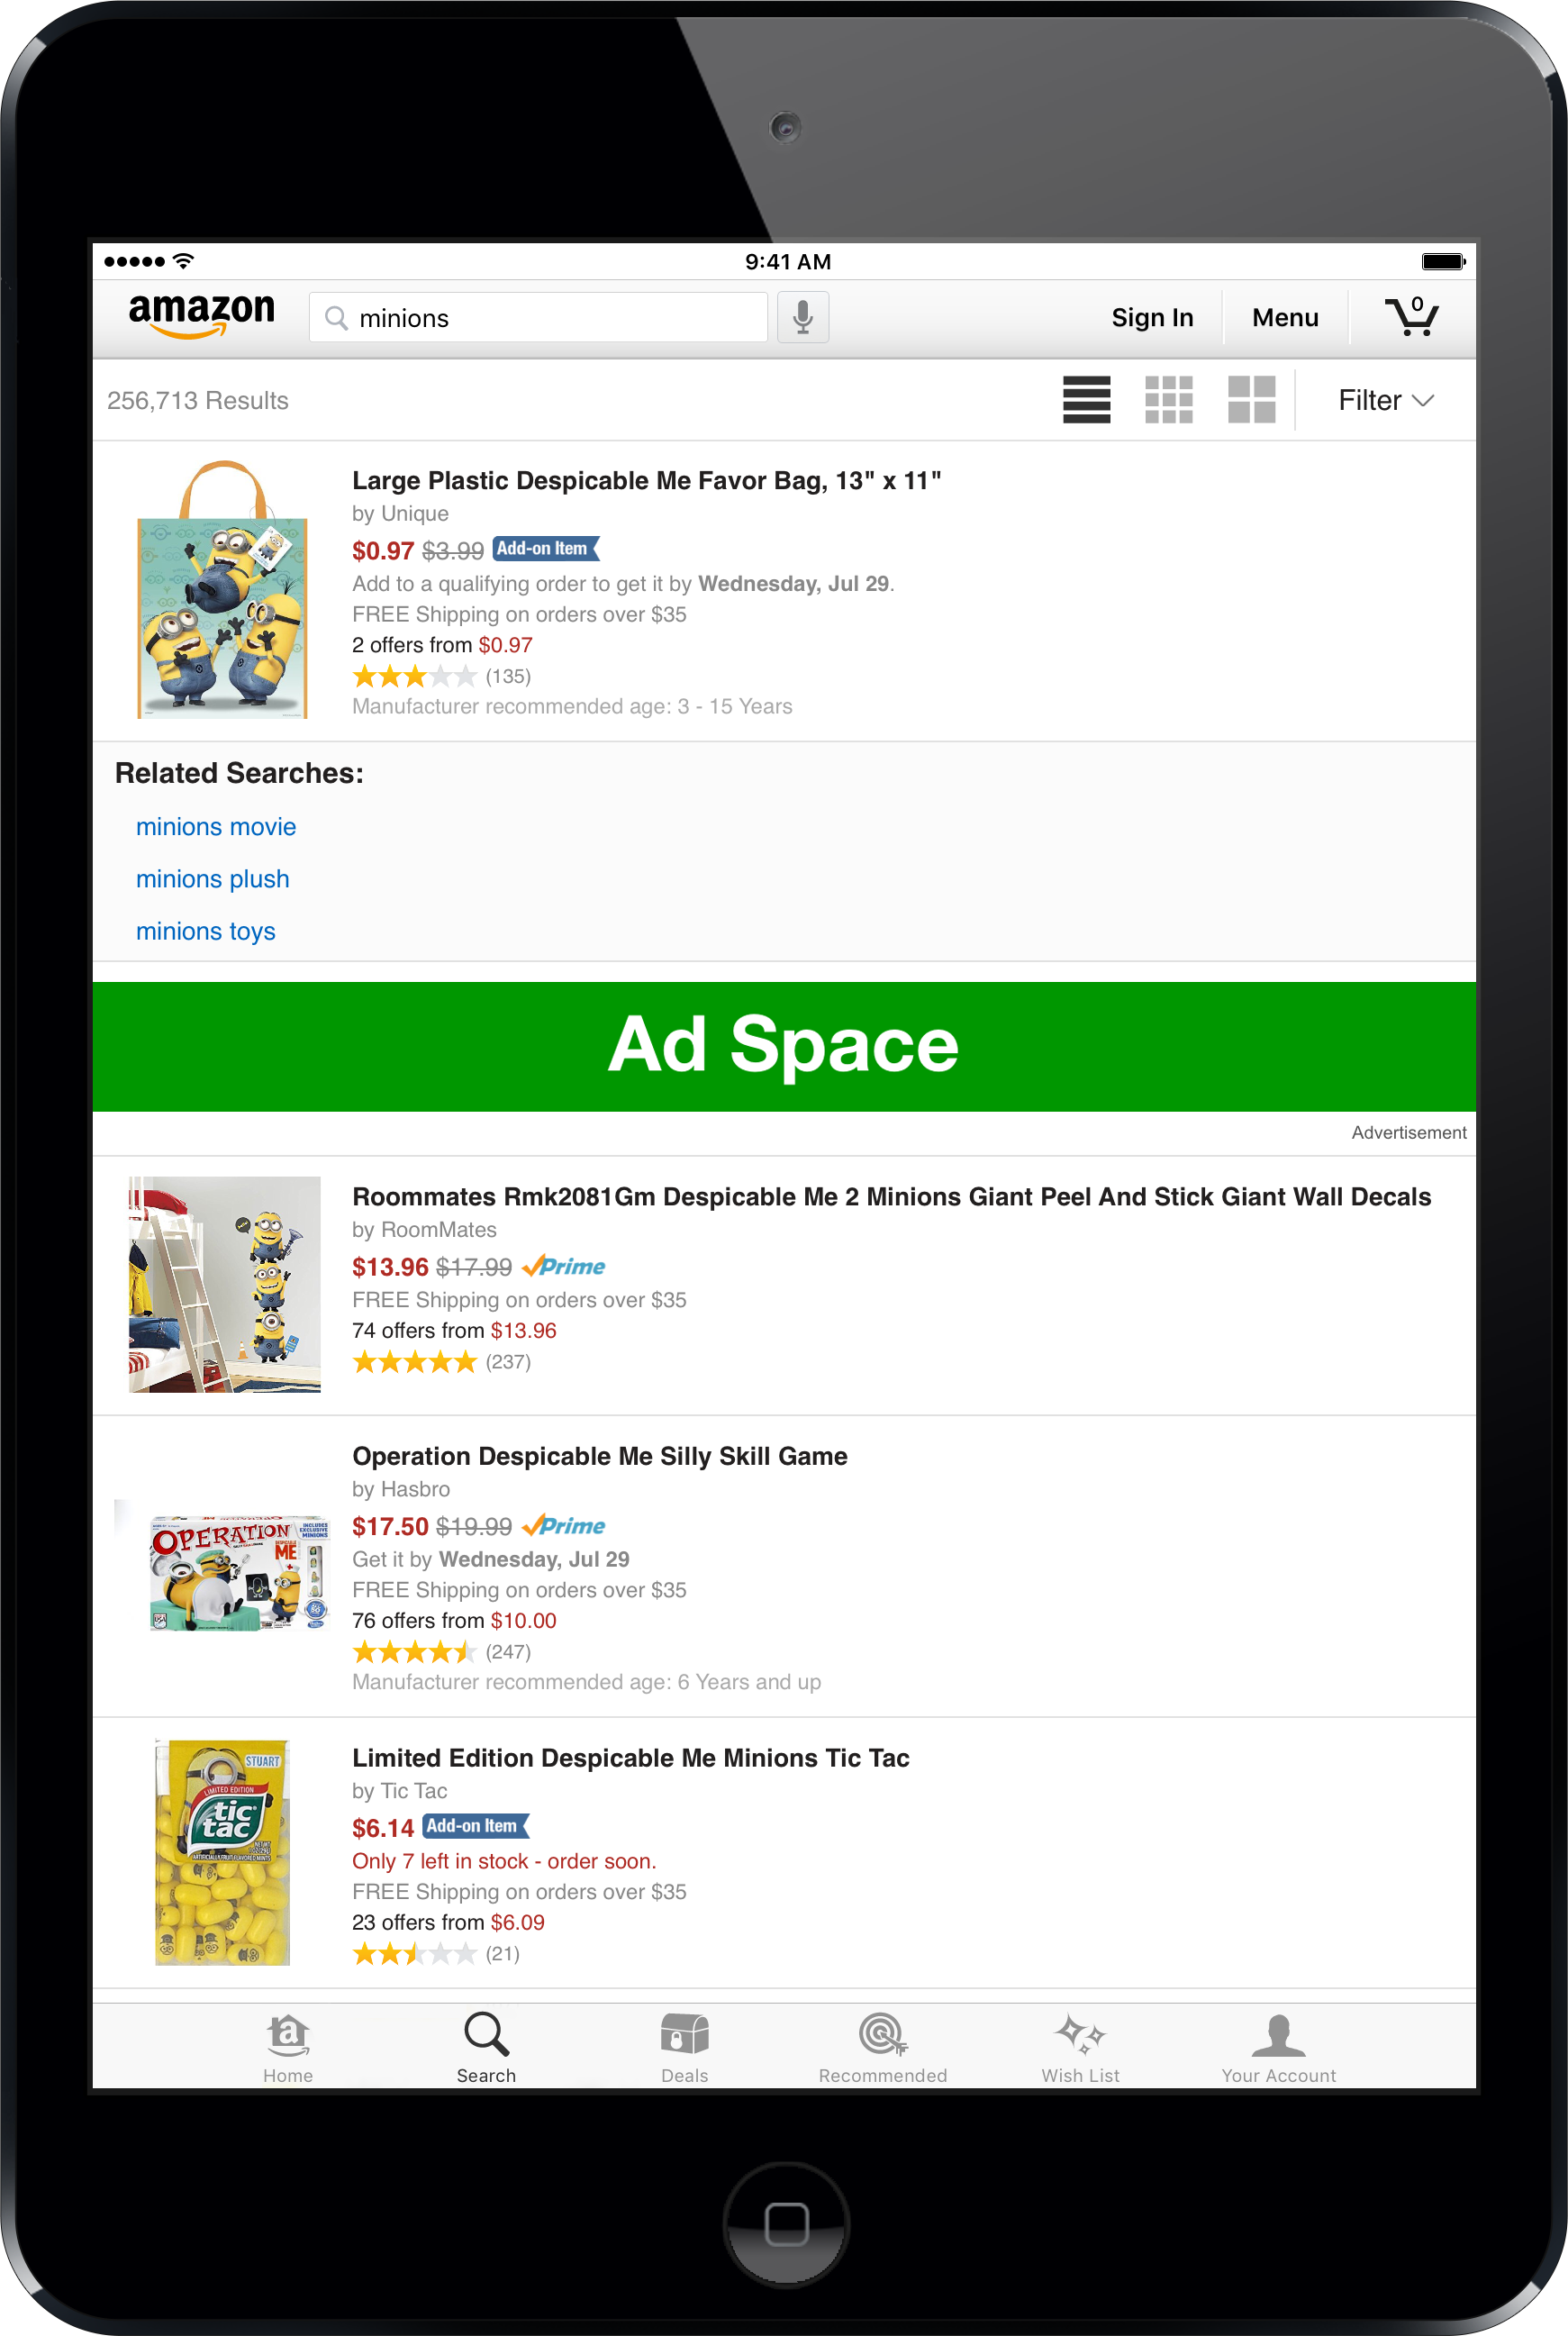 iPad Shopping App Search Page 1940 x 180 px